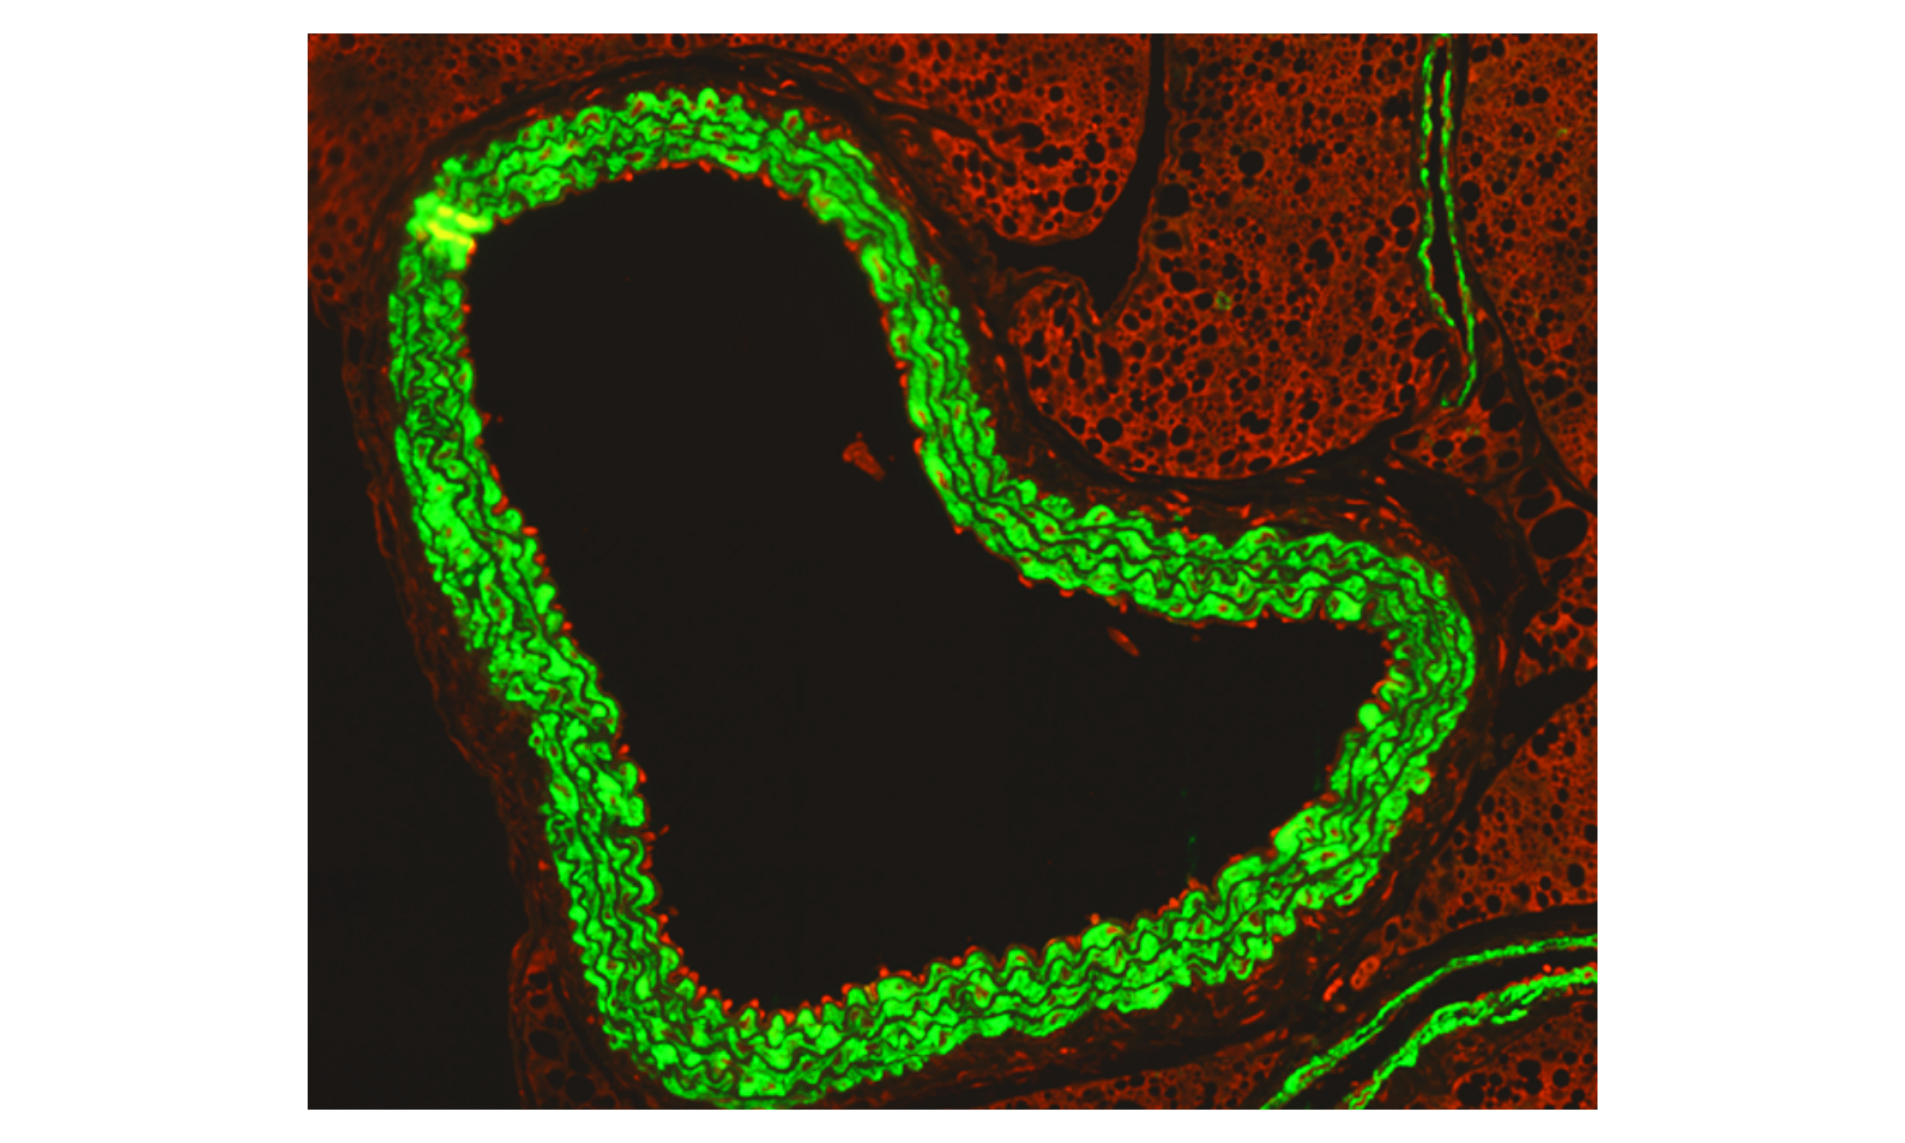 An immunofluorescence microscopy image shows how activated immune cells 'stick' to the inside of the aorta during flu infection in pregnancy.